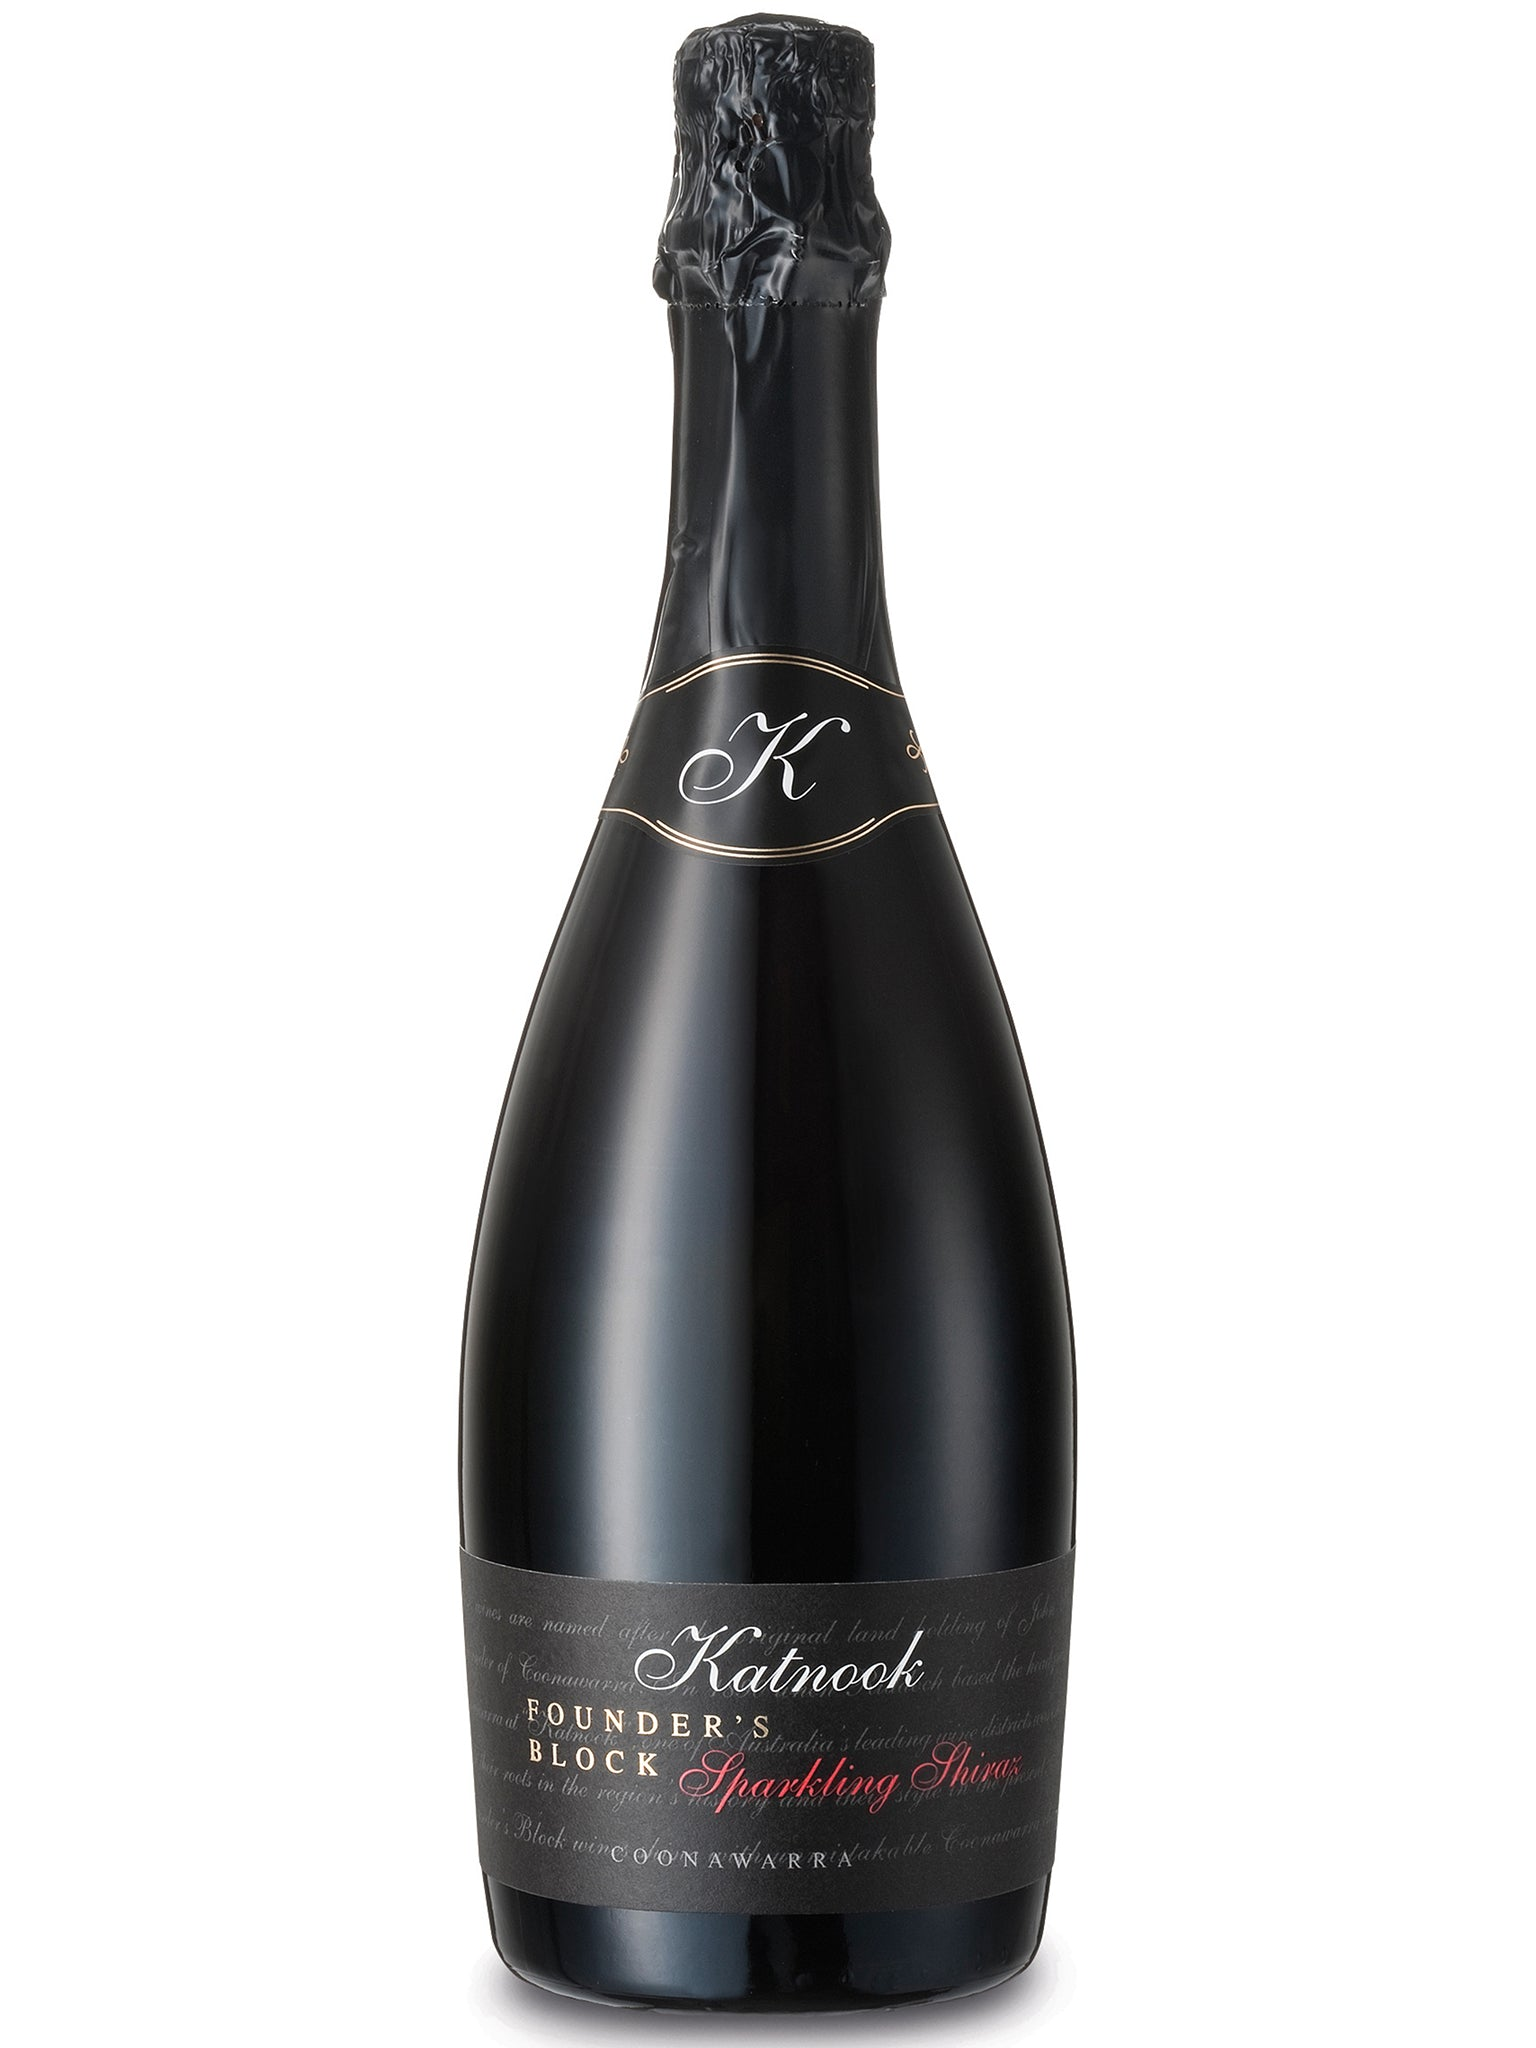 Katnook Founder's Block Sparkling Shiraz 6pk 2017